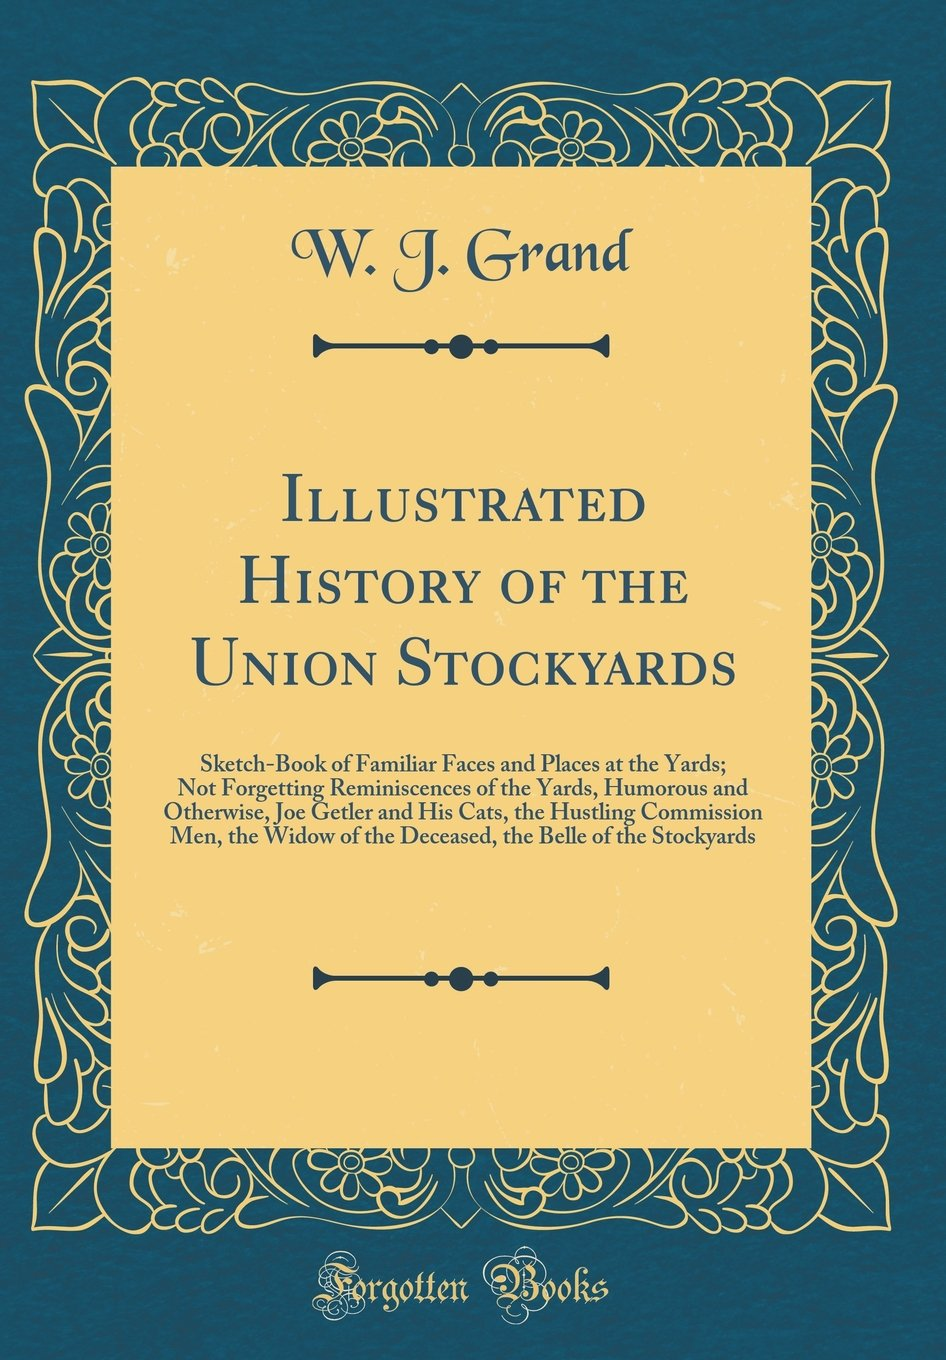 Download Illustrated History of the Union Stockyards: Sketch-Book of Familiar Faces and Places at the Yards; Not Forgetting Reminiscences of the Yards, ... Men, the Widow of the Deceased, the Bel PDF